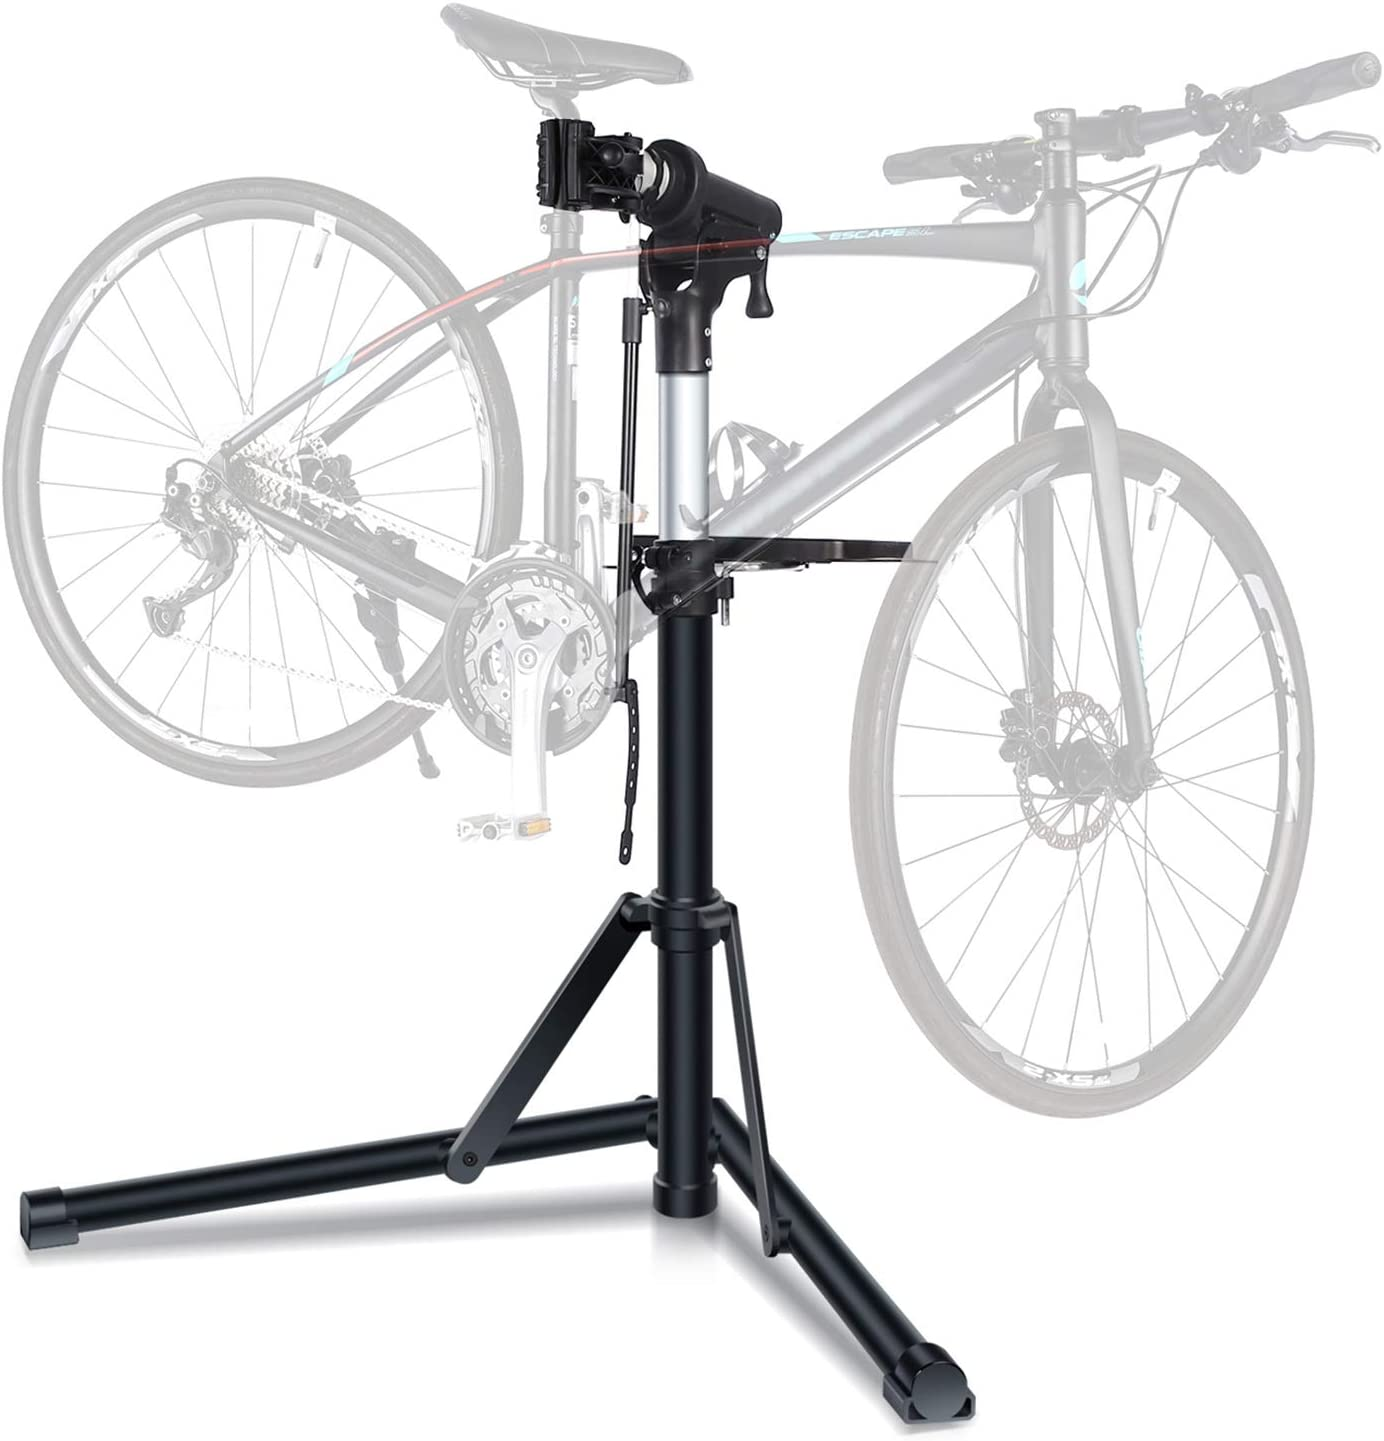 Sportneer Bike Repair Stand, Foldable Bicycle Repair Rack